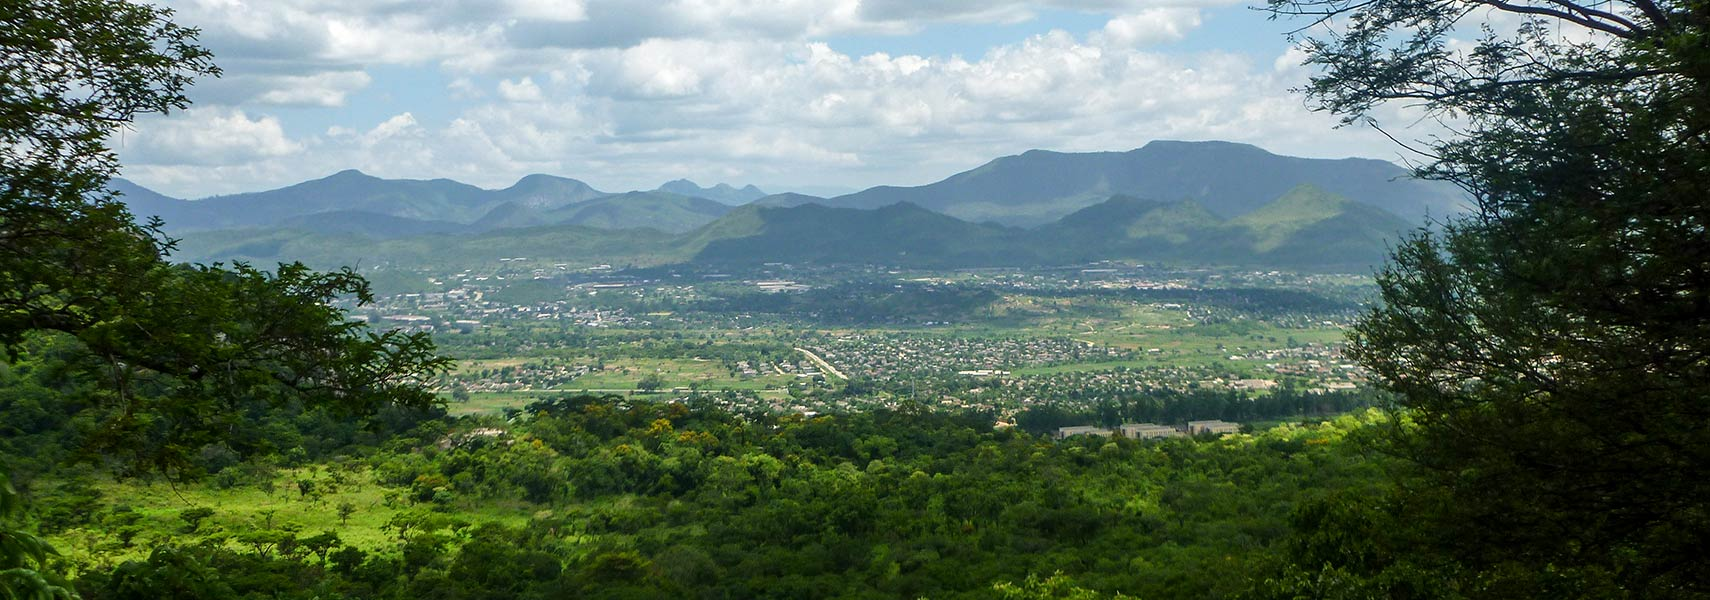 Mutare Area seen from Christmas Pass